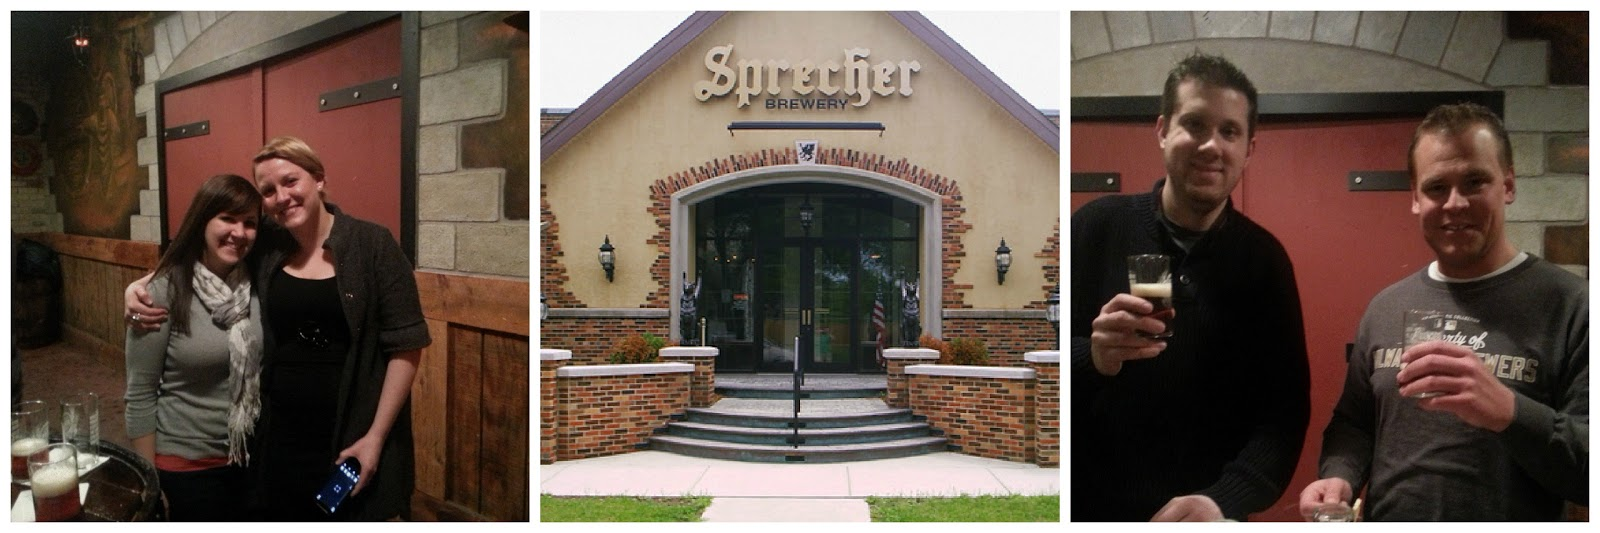 Sprecher Tour Review | Find your Dream